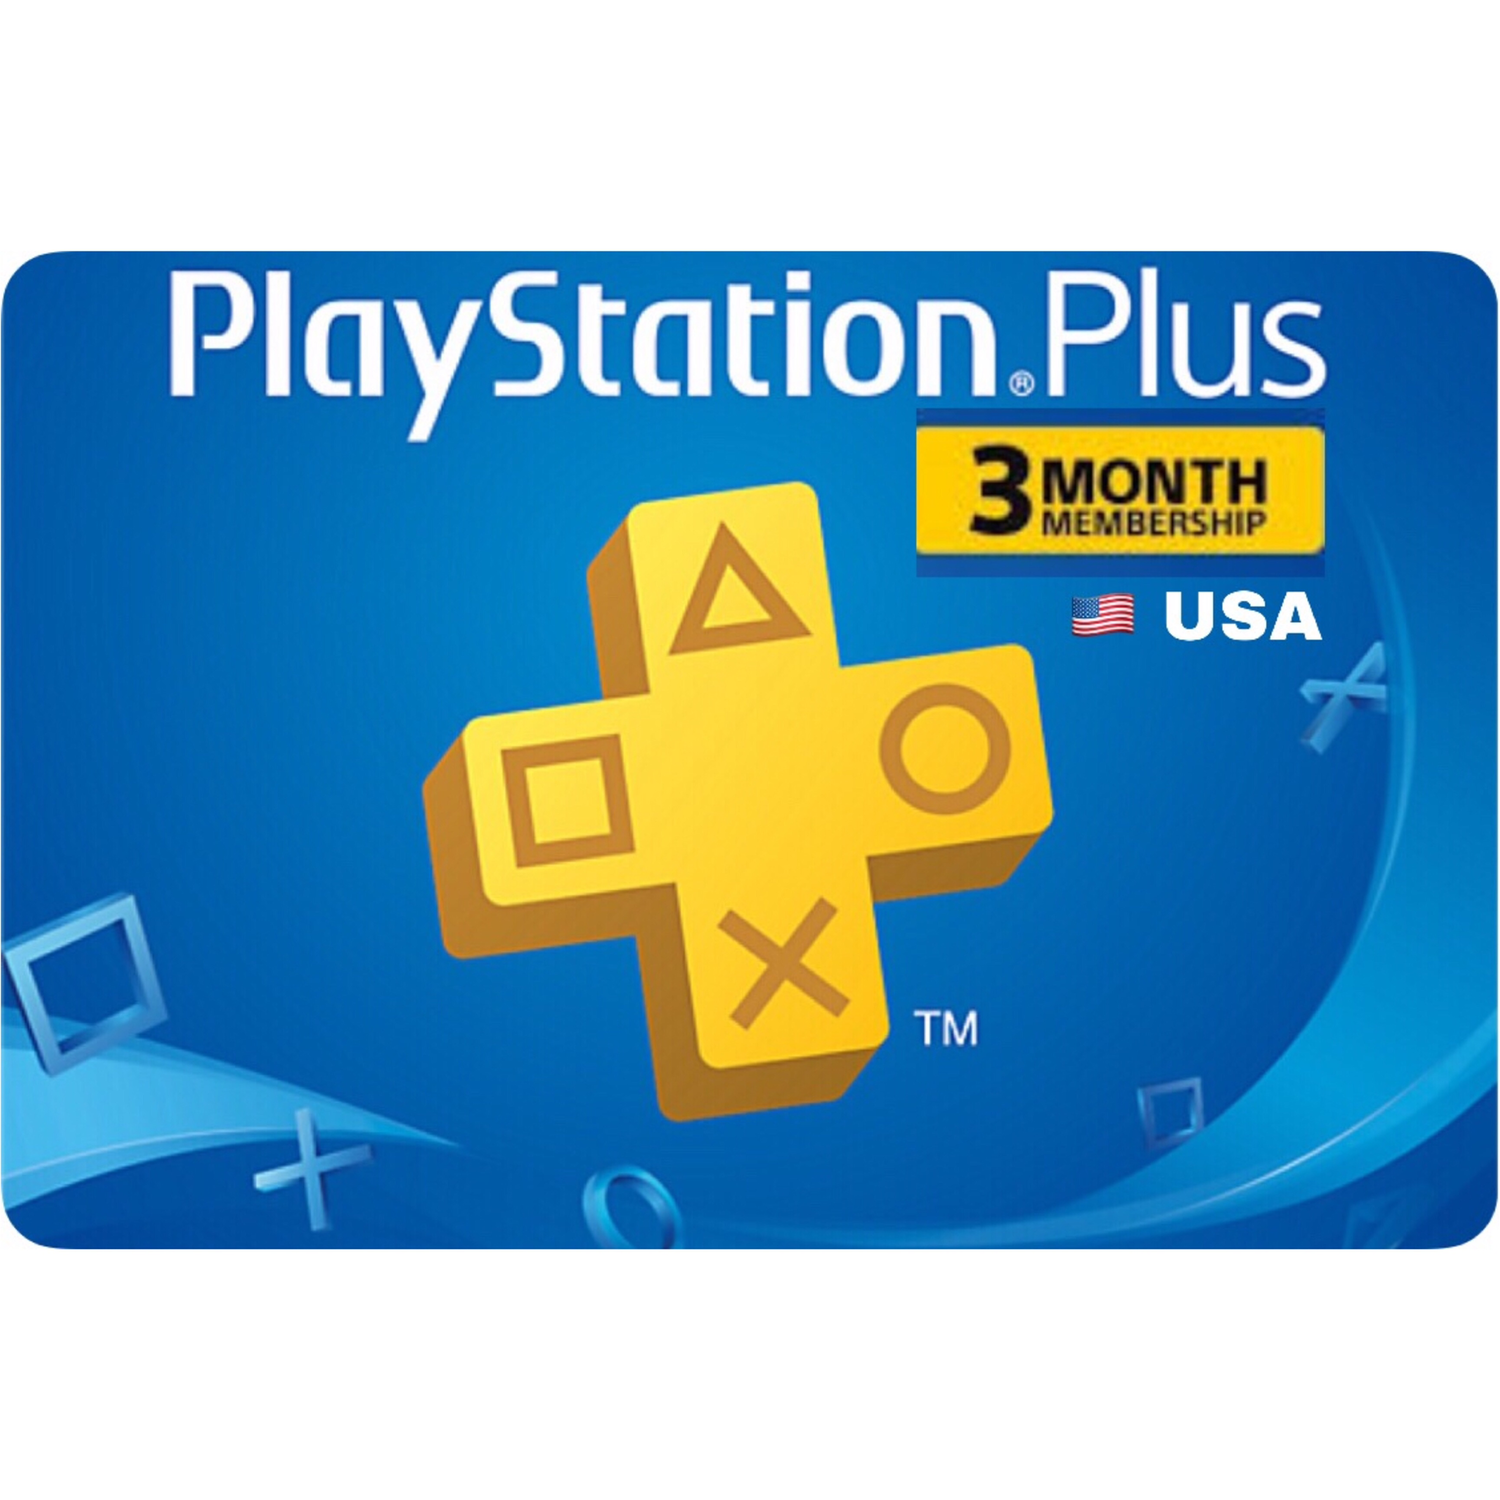 PSN Plus Card - Playstation Plus US 3 Months Membership